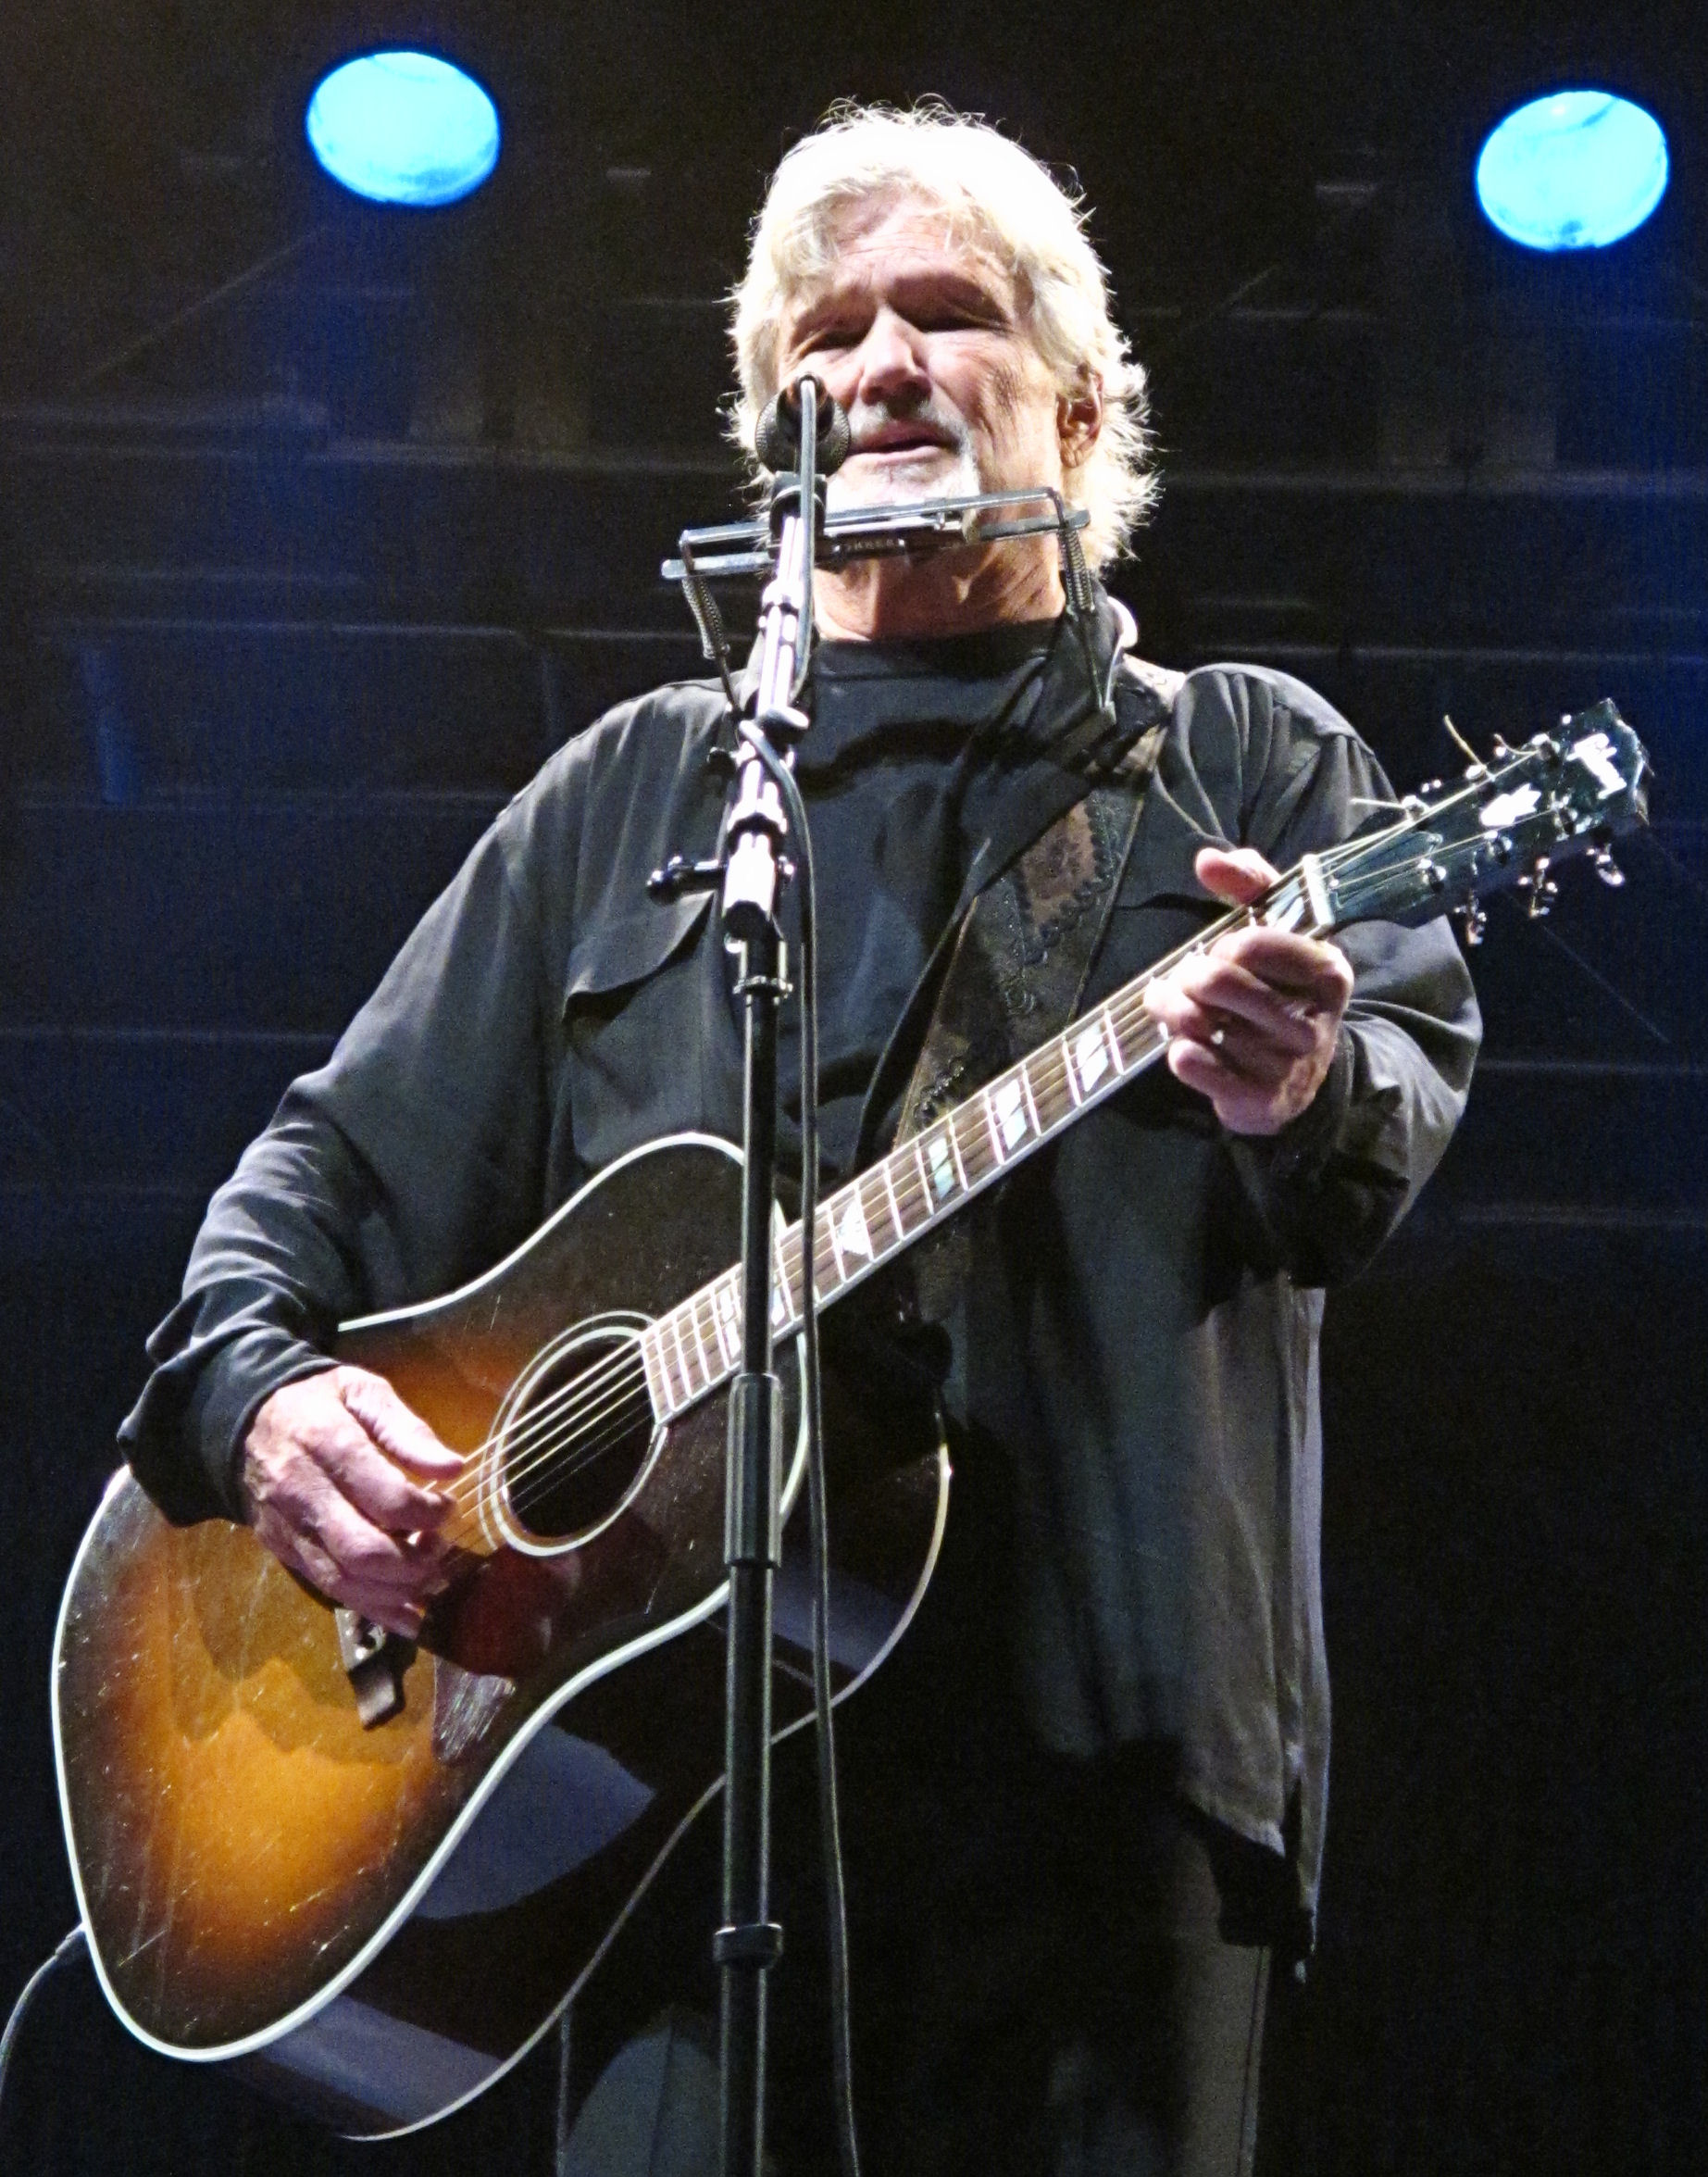 There are many conditions that mimic Alzheimer's and other dementias. Kris Kristofferson's dementia proved to be Lyme disease.